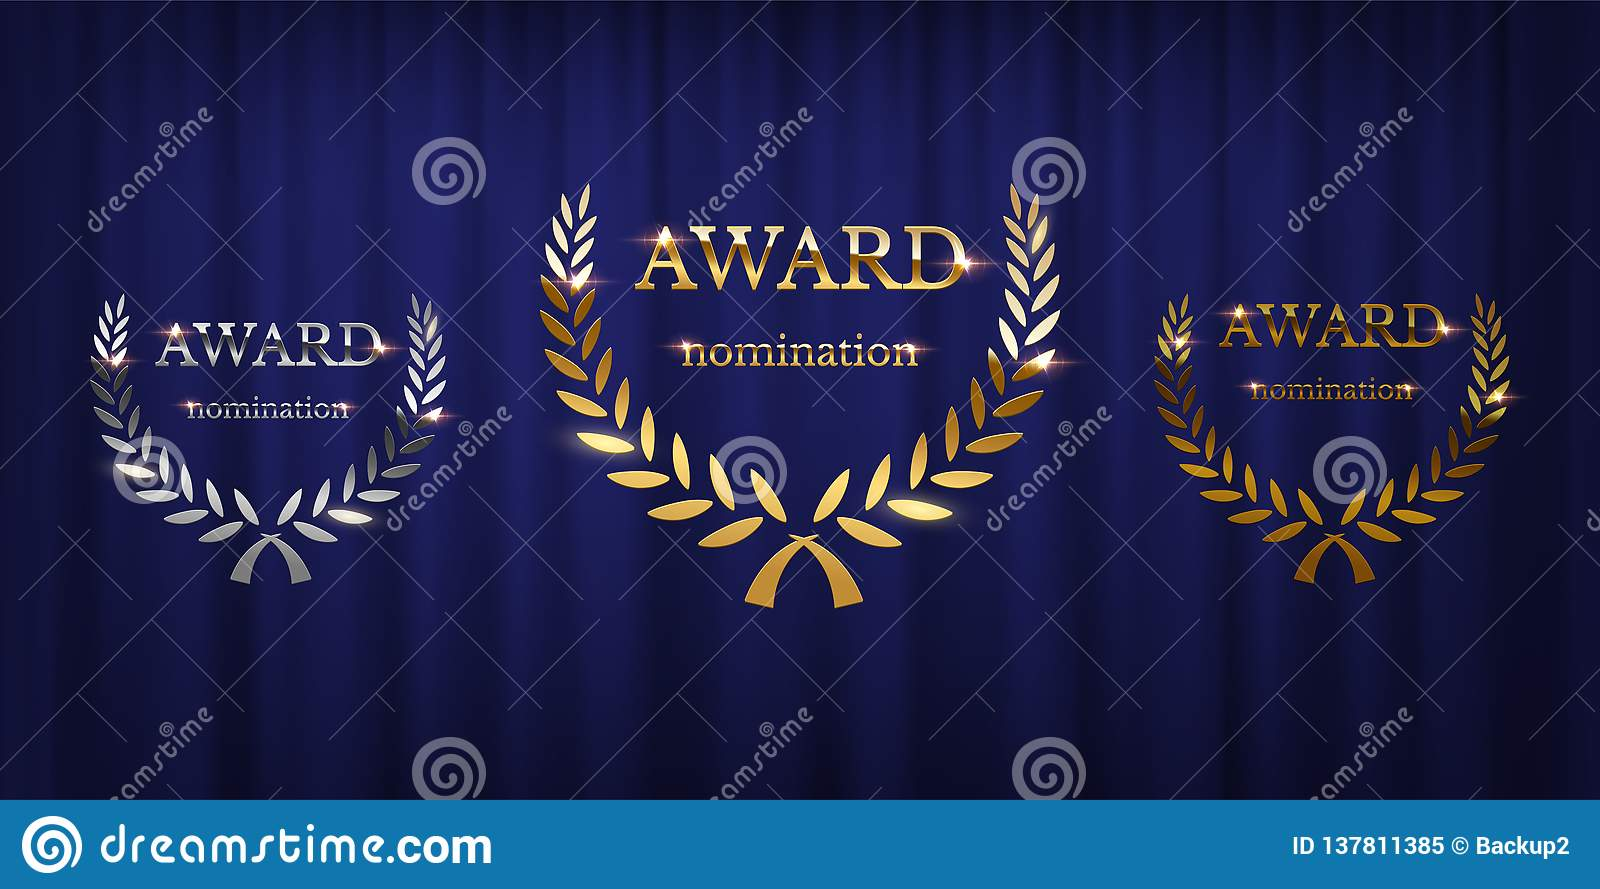 Golden, silver and bronze award signs with laurel wreath isolated on blue curtain background. Vector award design